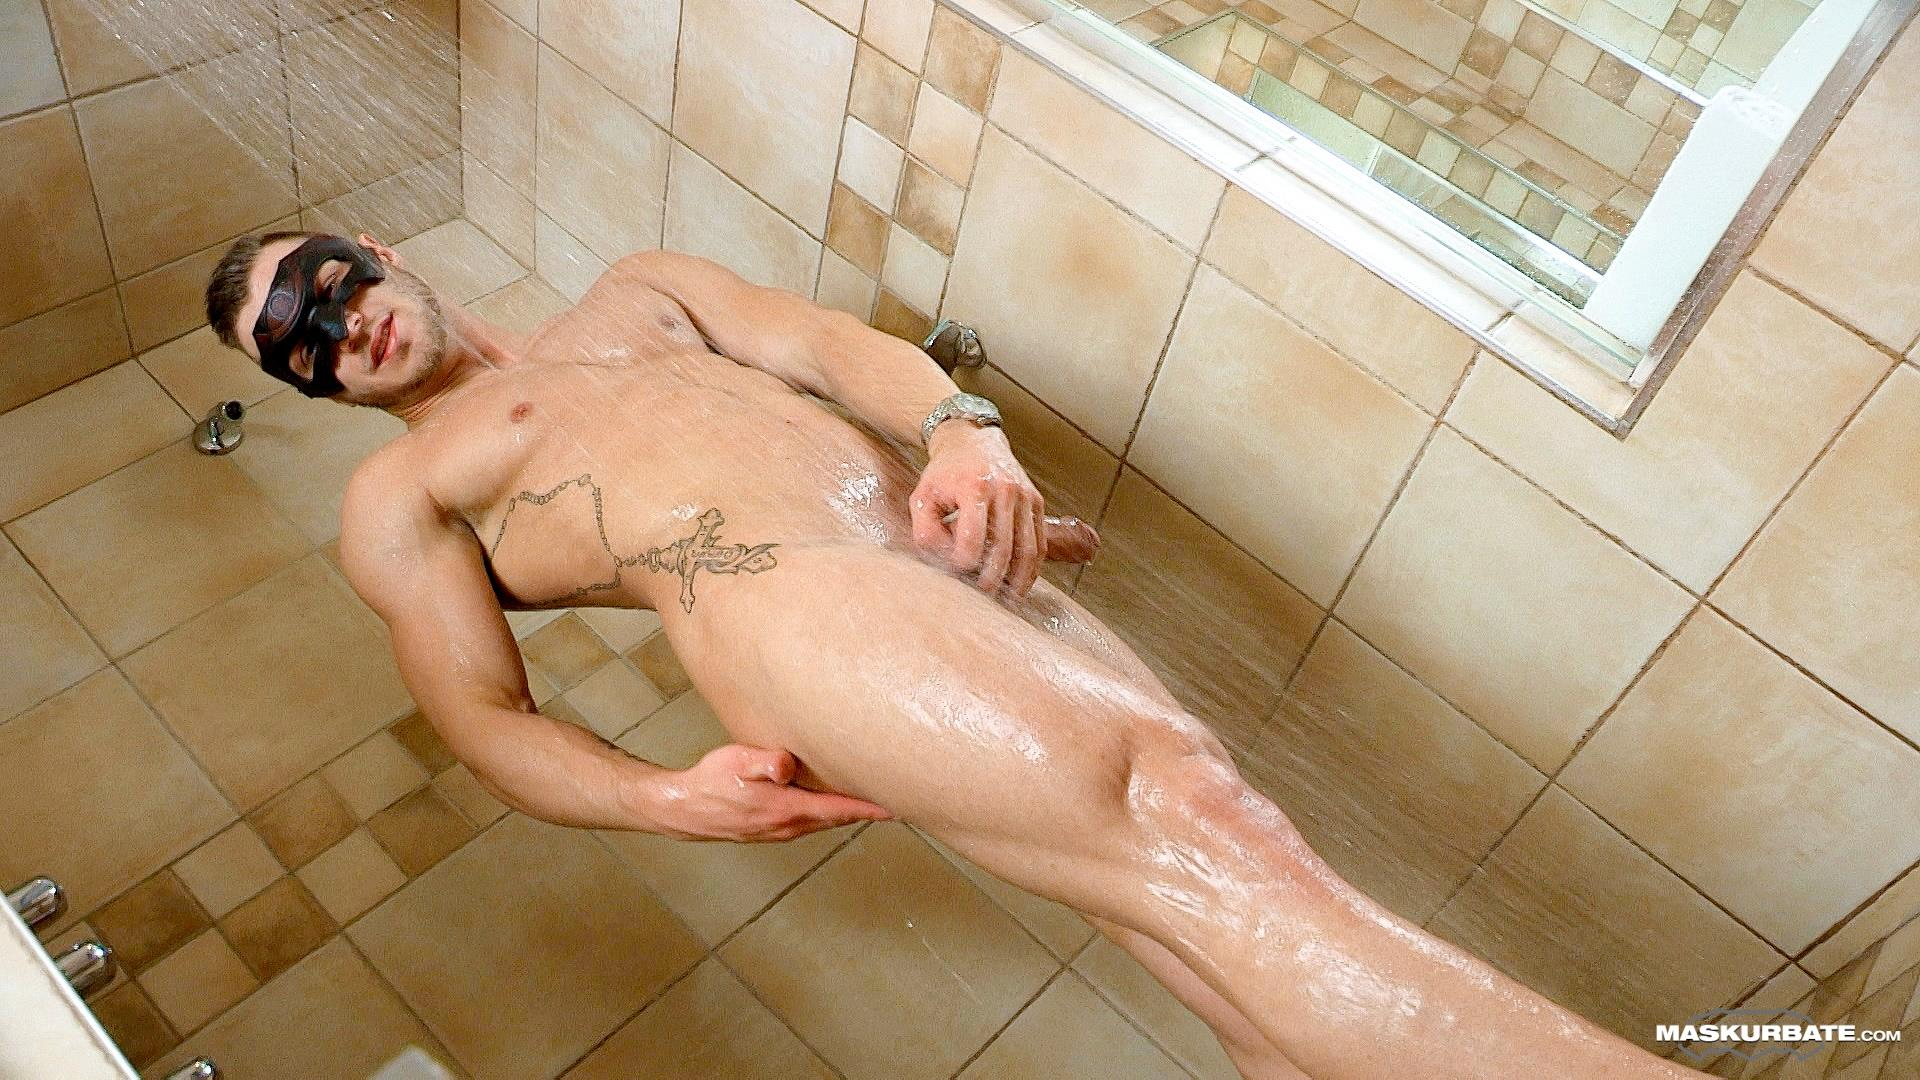 Maskurbate-Mike-Muscle-Hunk-With-A-Big-Uncut-Cock-Jerking-Off-Amateur-Gay-Porn-15 Bi-Curious Muscle Hunk With A Big Uncut Cock Auditions For Gay Porn